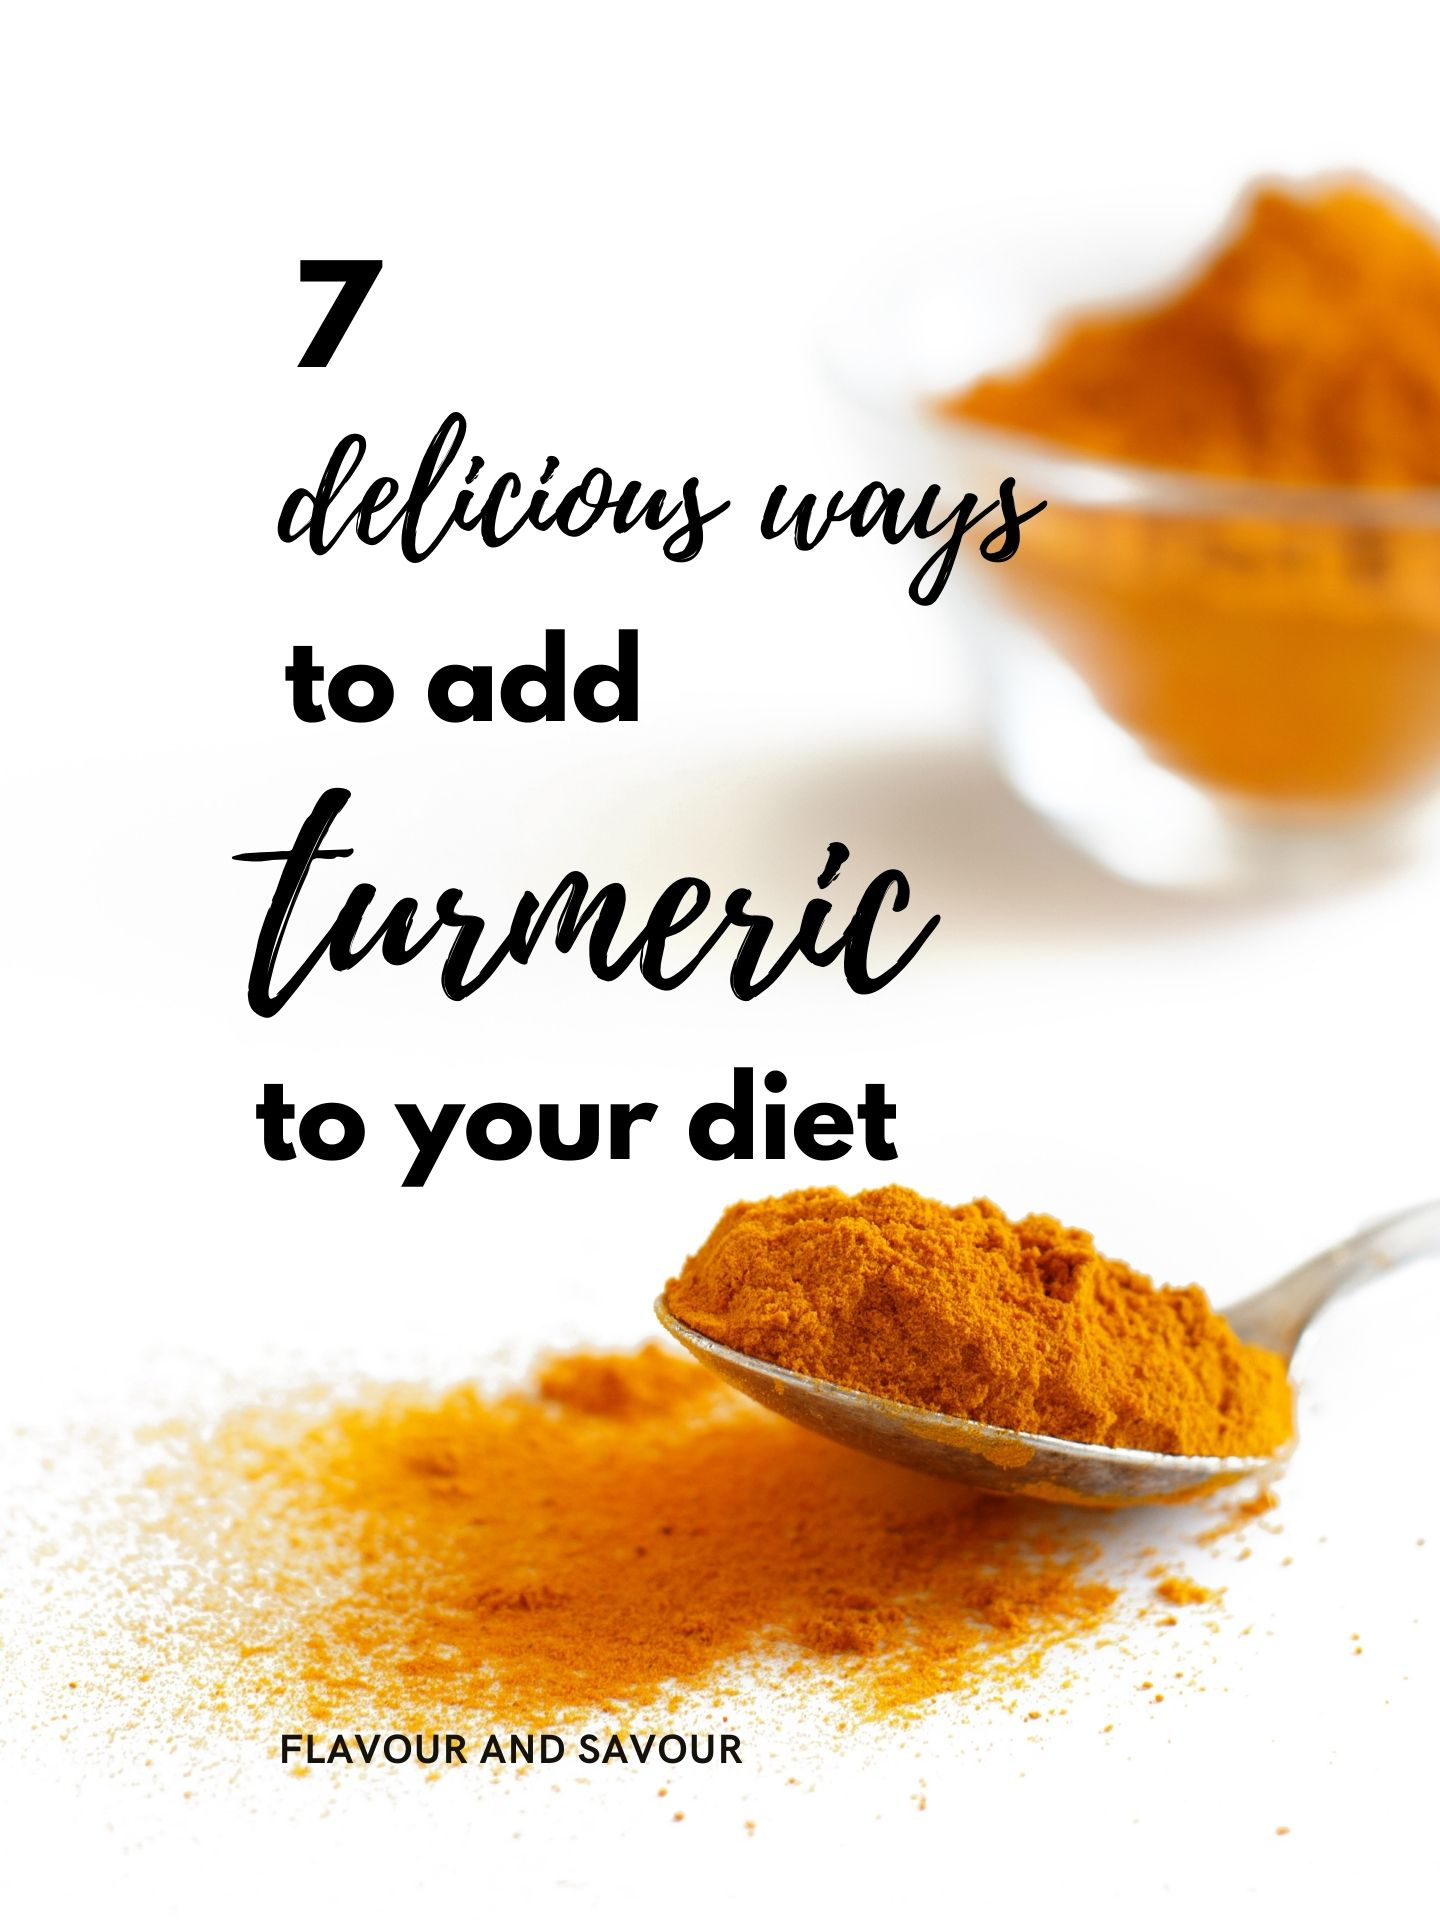 image of ground turmeric with text 7 ways to add turmeric to your diet